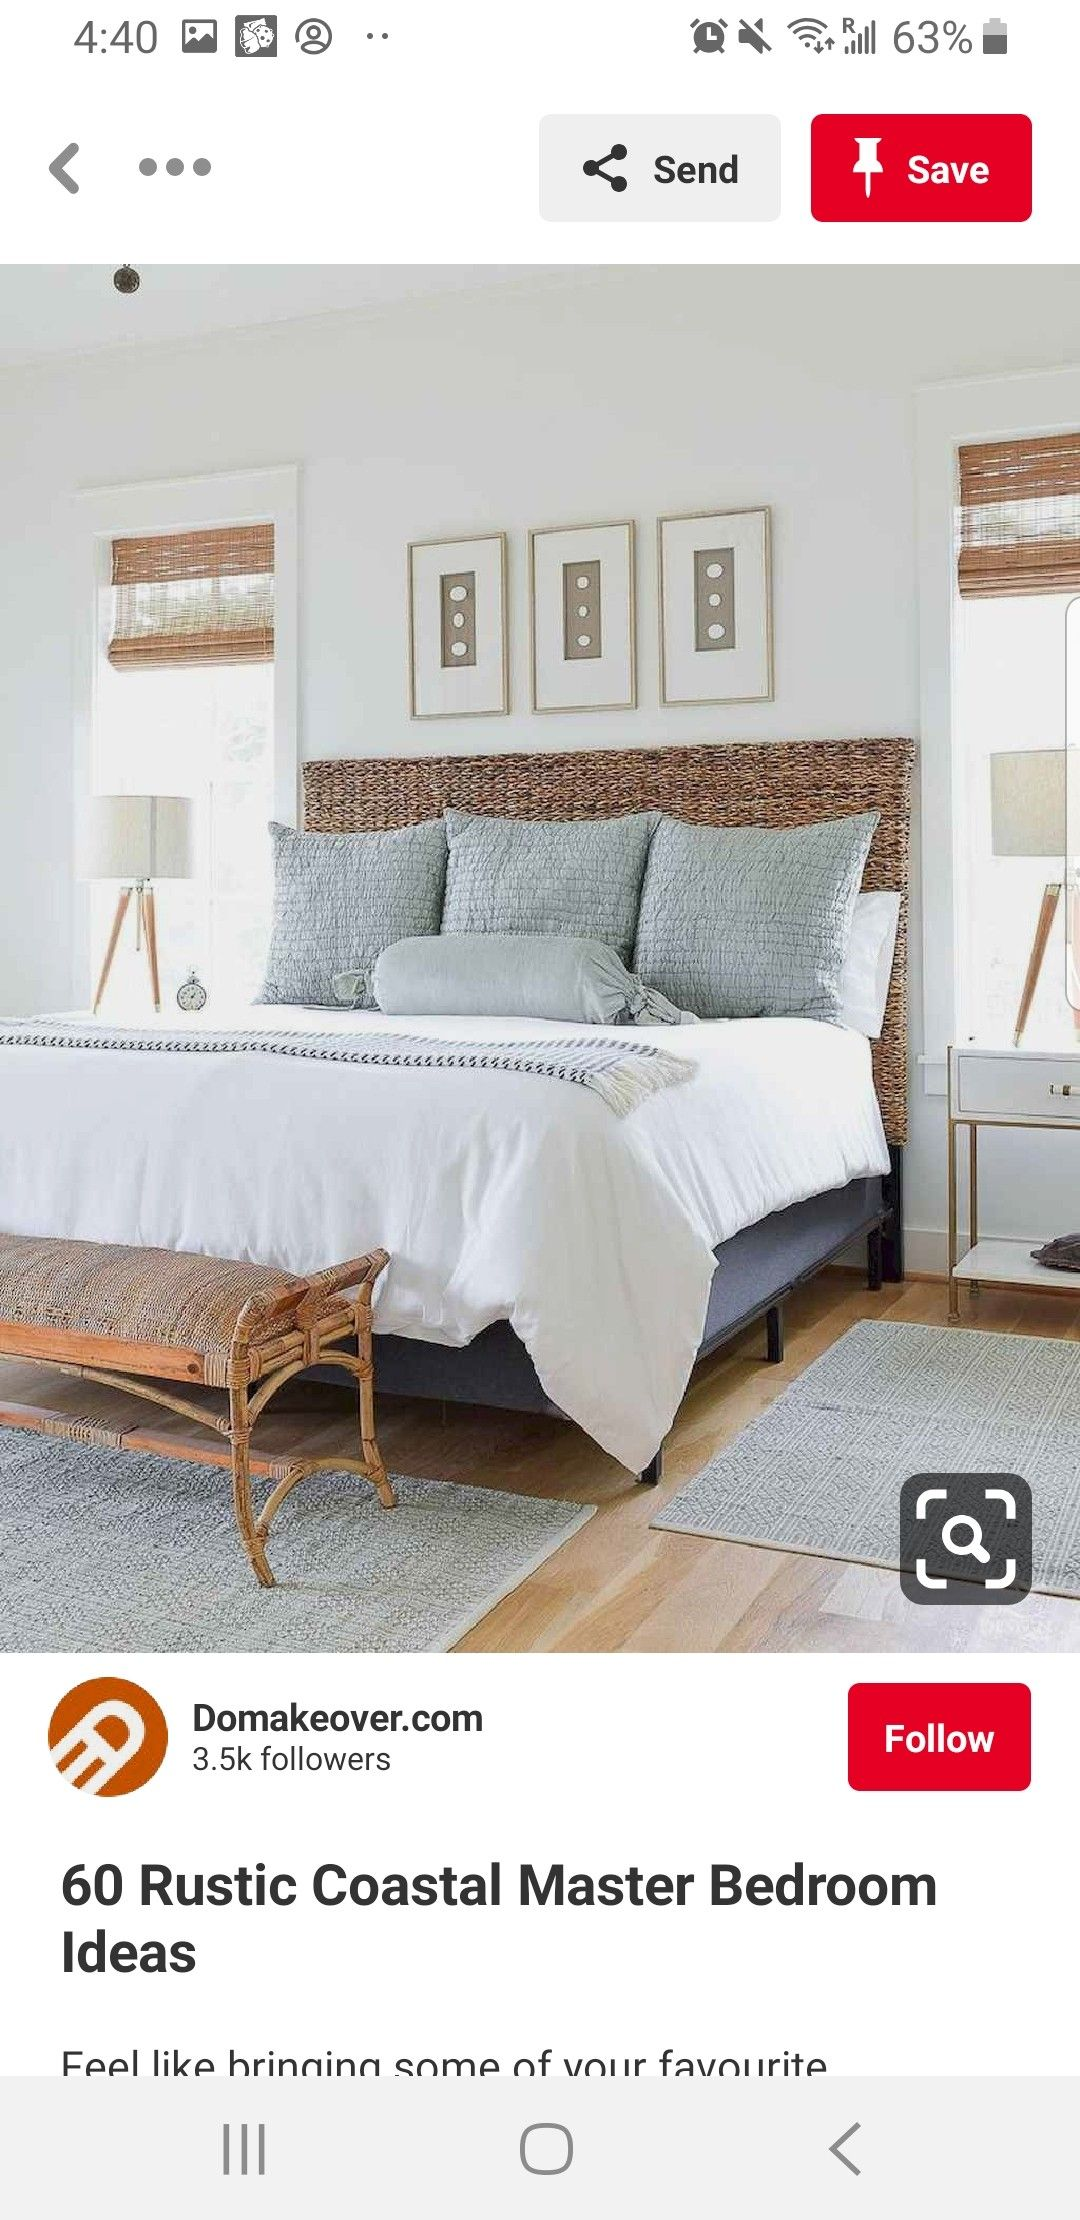 Pin by Shannon Blestel on home Coastal master bedroom